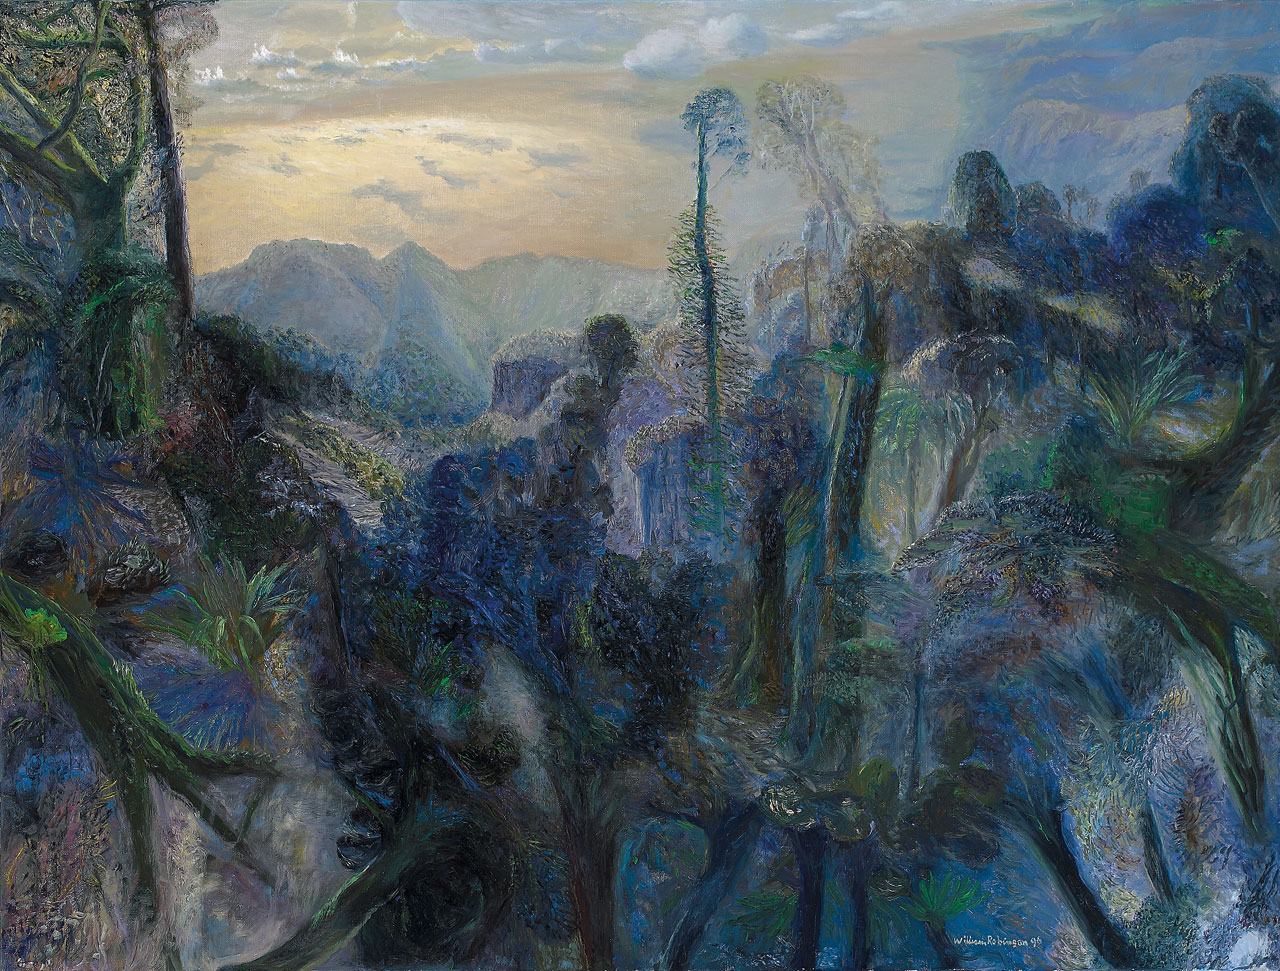 William Robinson 'The sea with morning sun from Springbrook' (study) 1996. Oil on linen. Private collection, Brisbane.